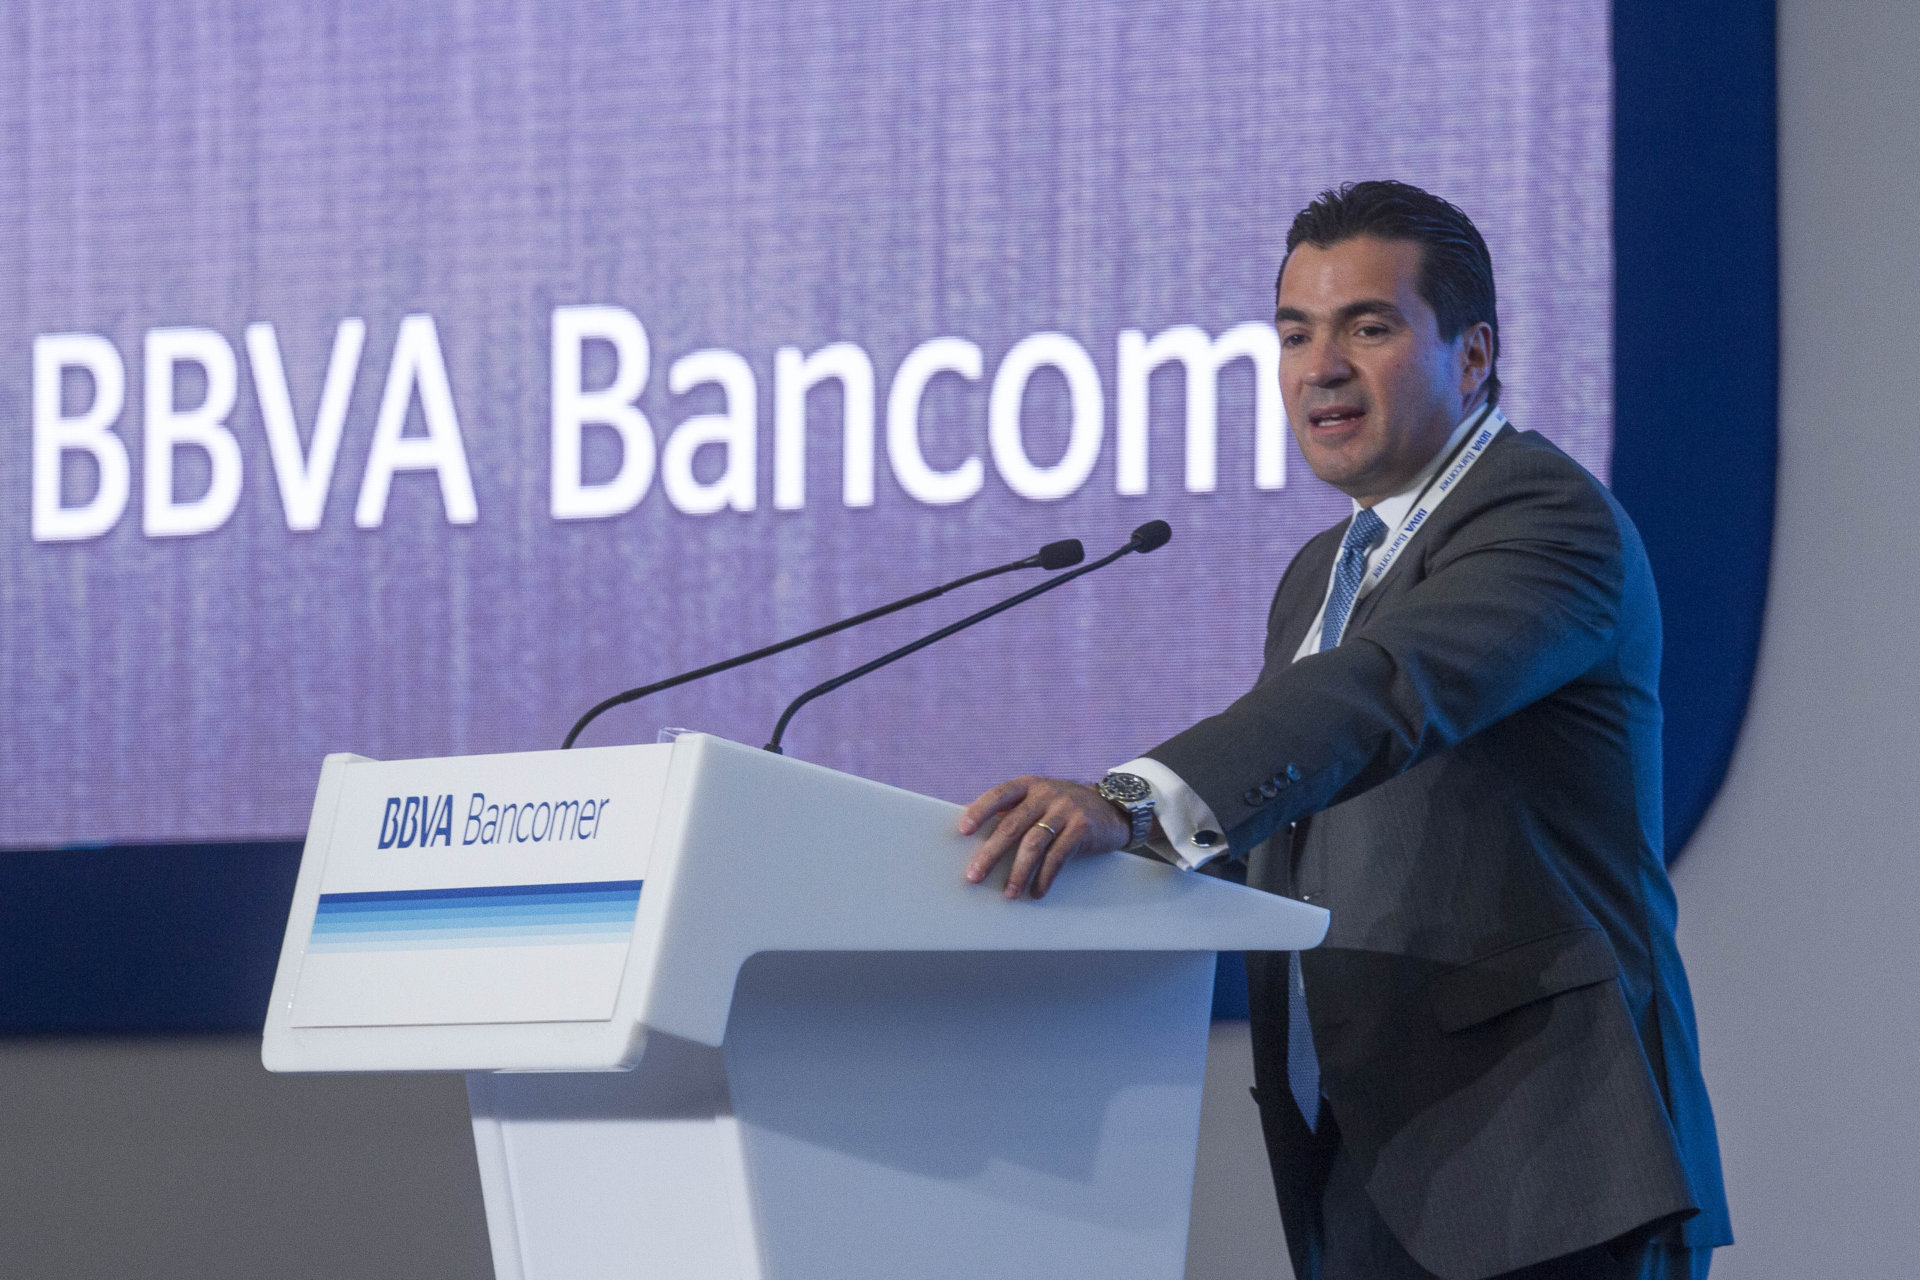 Bancomer: BBVA Bancomer Continues To Support Growth In Mexico